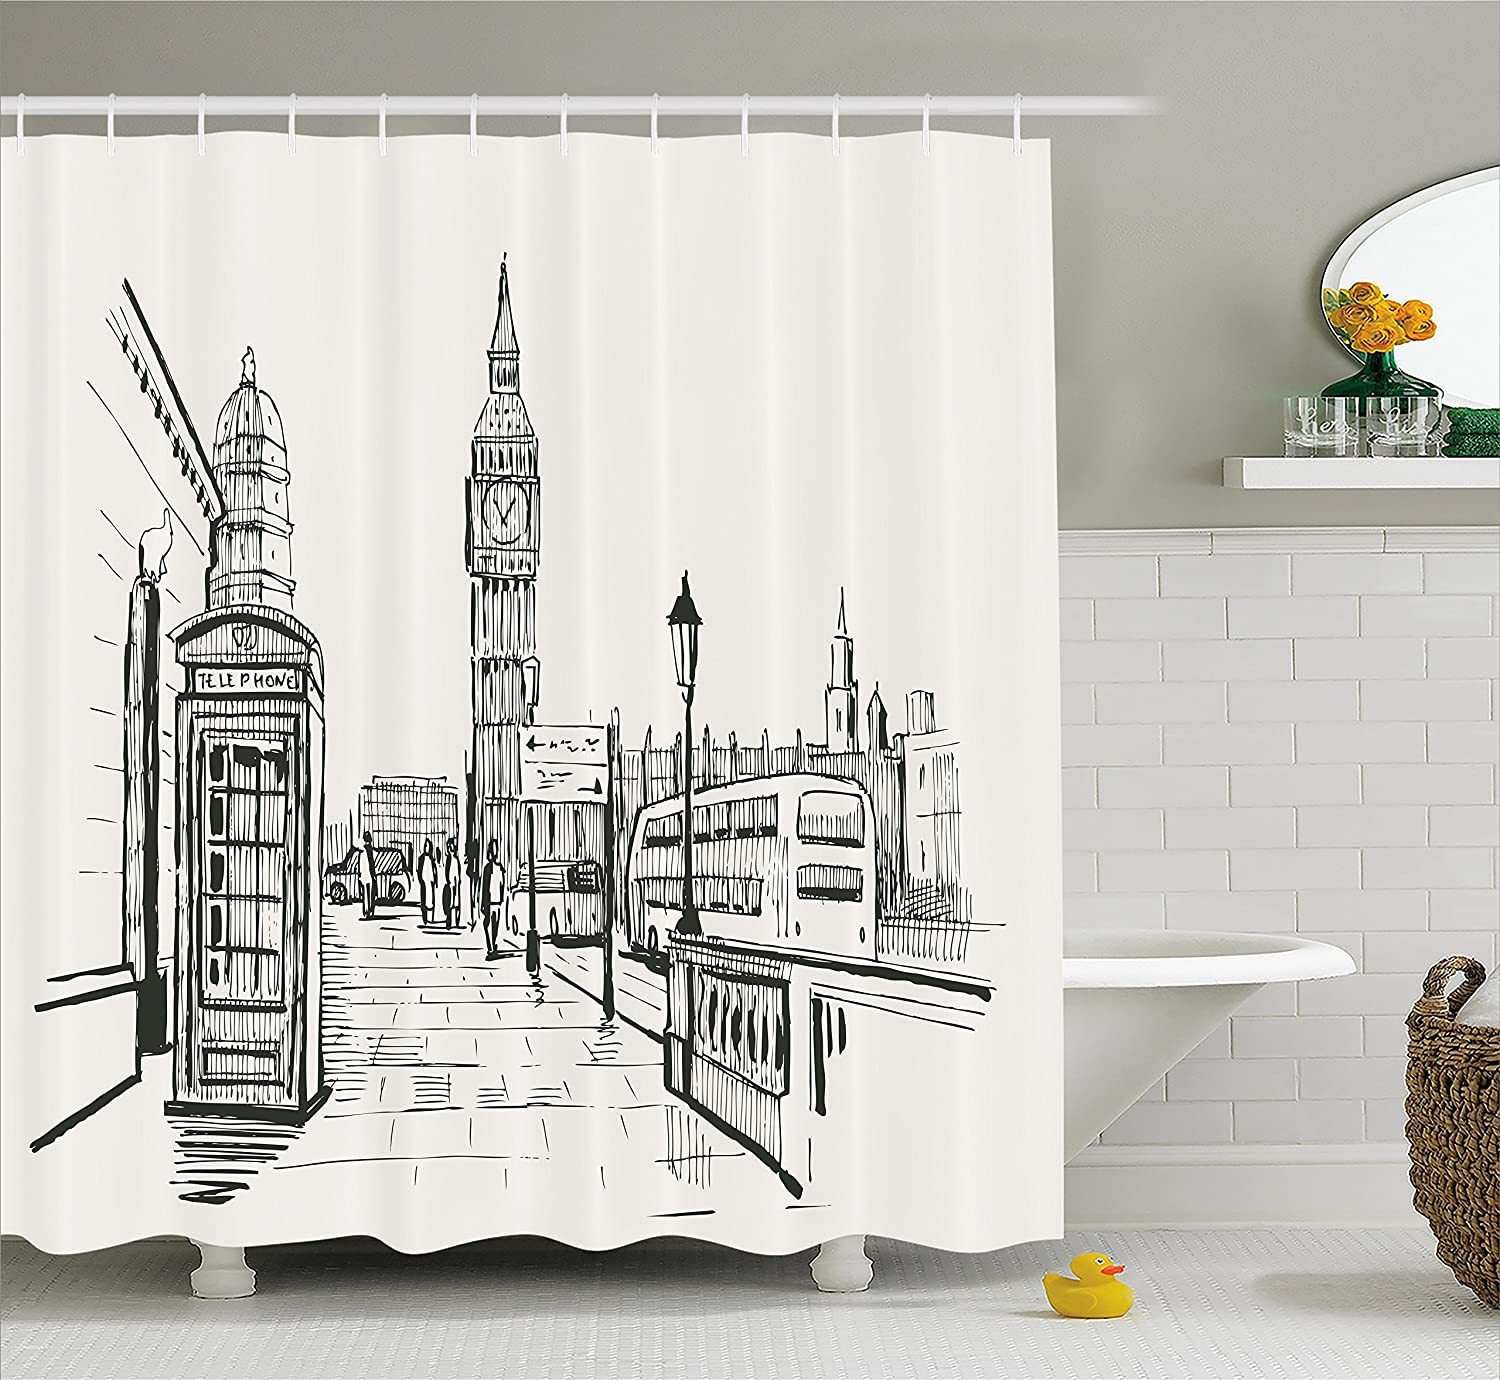 Ambesonne Modern Shower Curtain London City With Big Ben Monument Scene In Sketch Style British Famous Town Artwork Fabric Bathroom Decor Set With Hooks